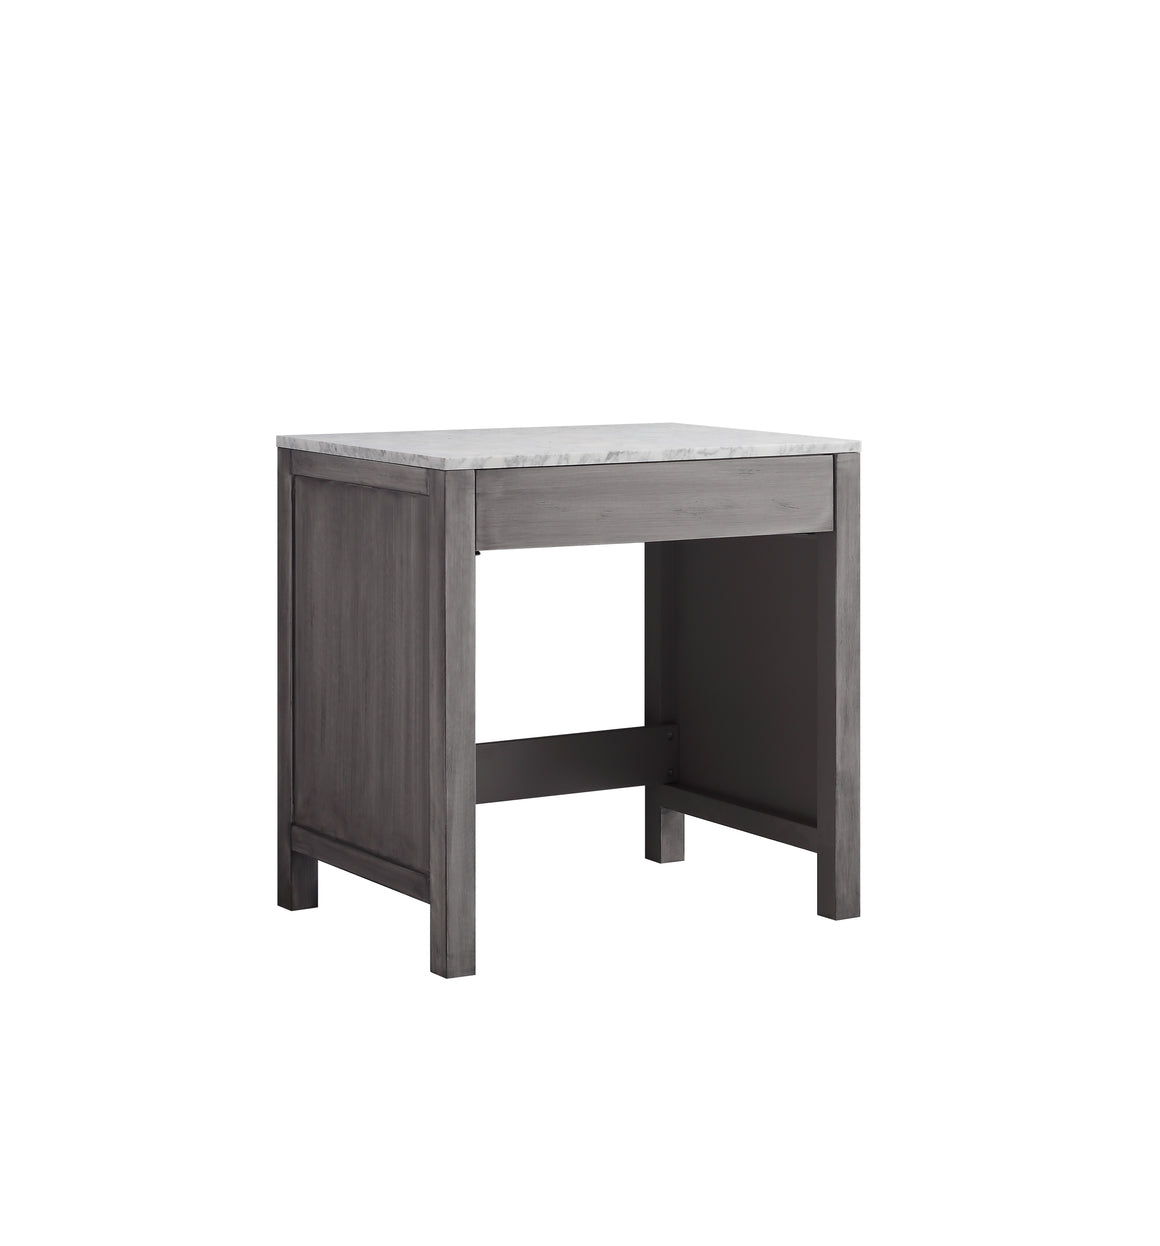 "Jacques 30"" Single Make-Up Table in Distressed Grey, White Carrera Marble Top"